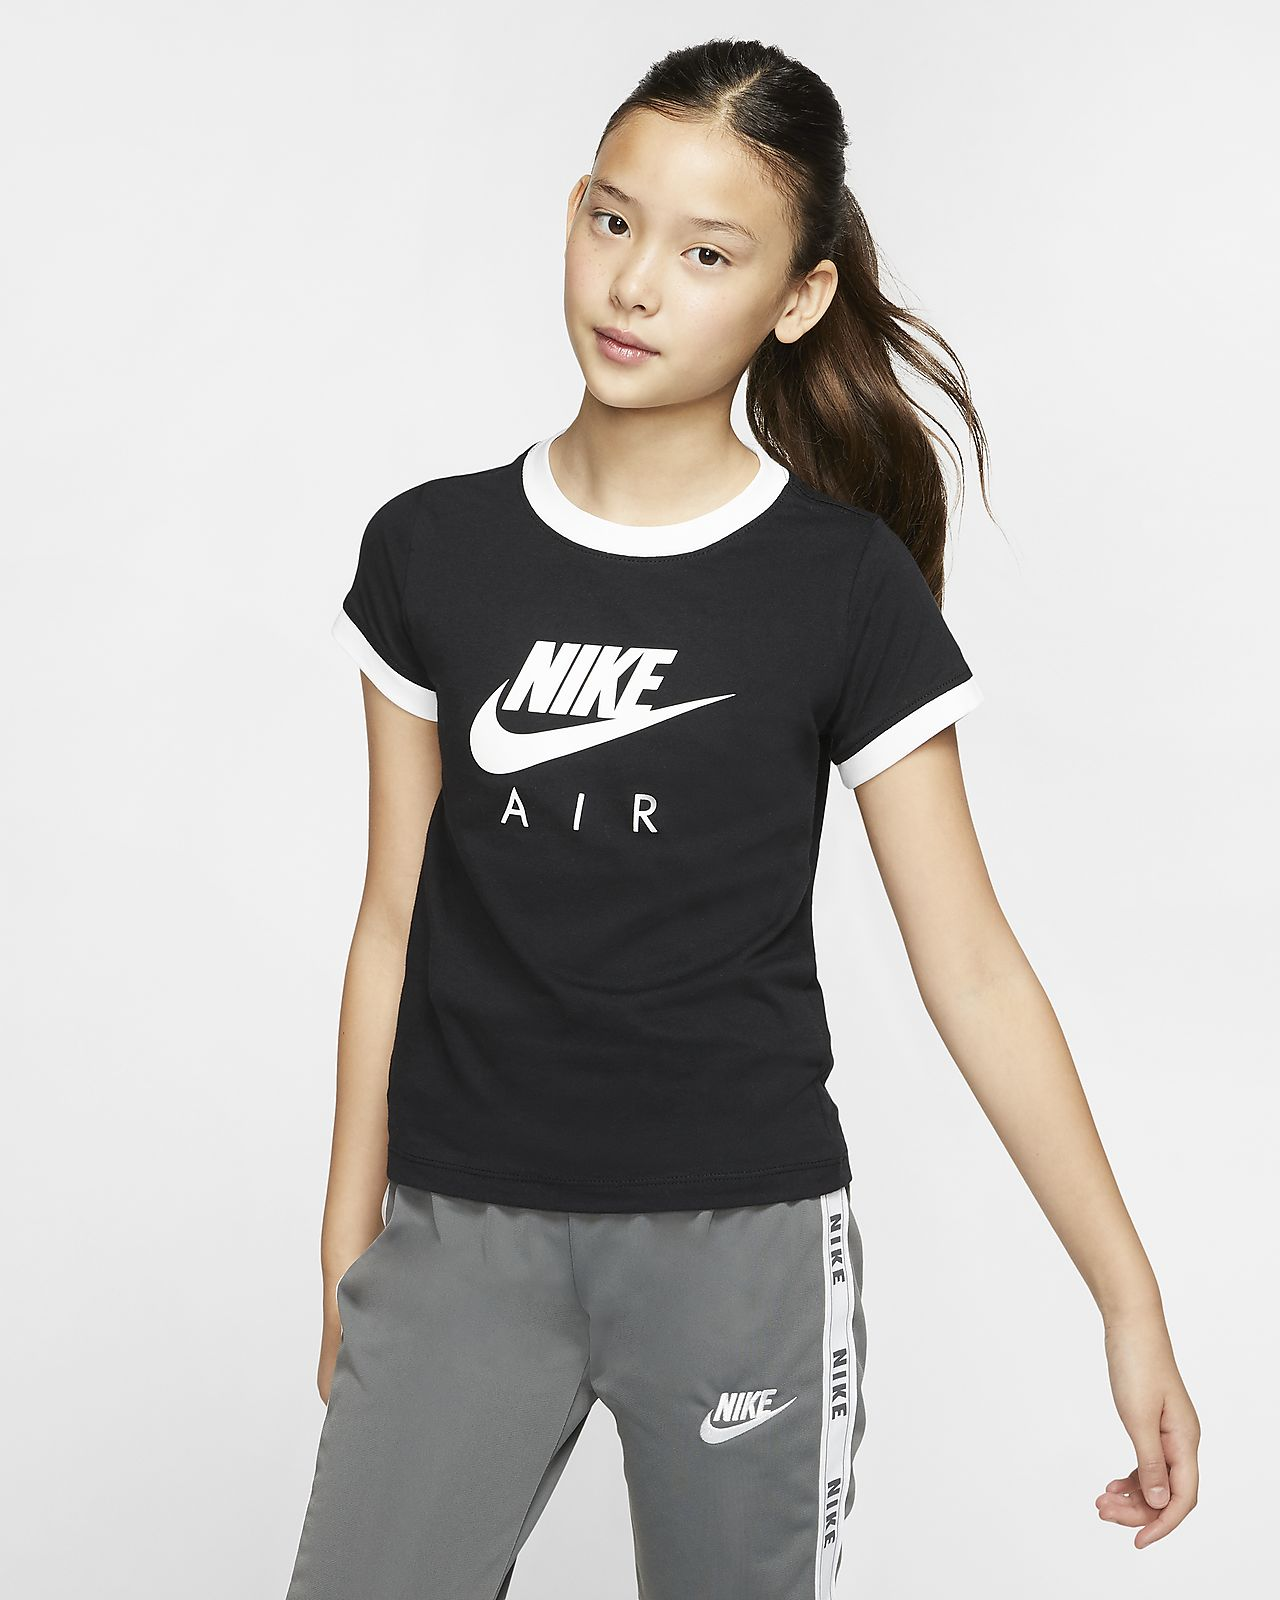 Nike Air T-shirt voor kids